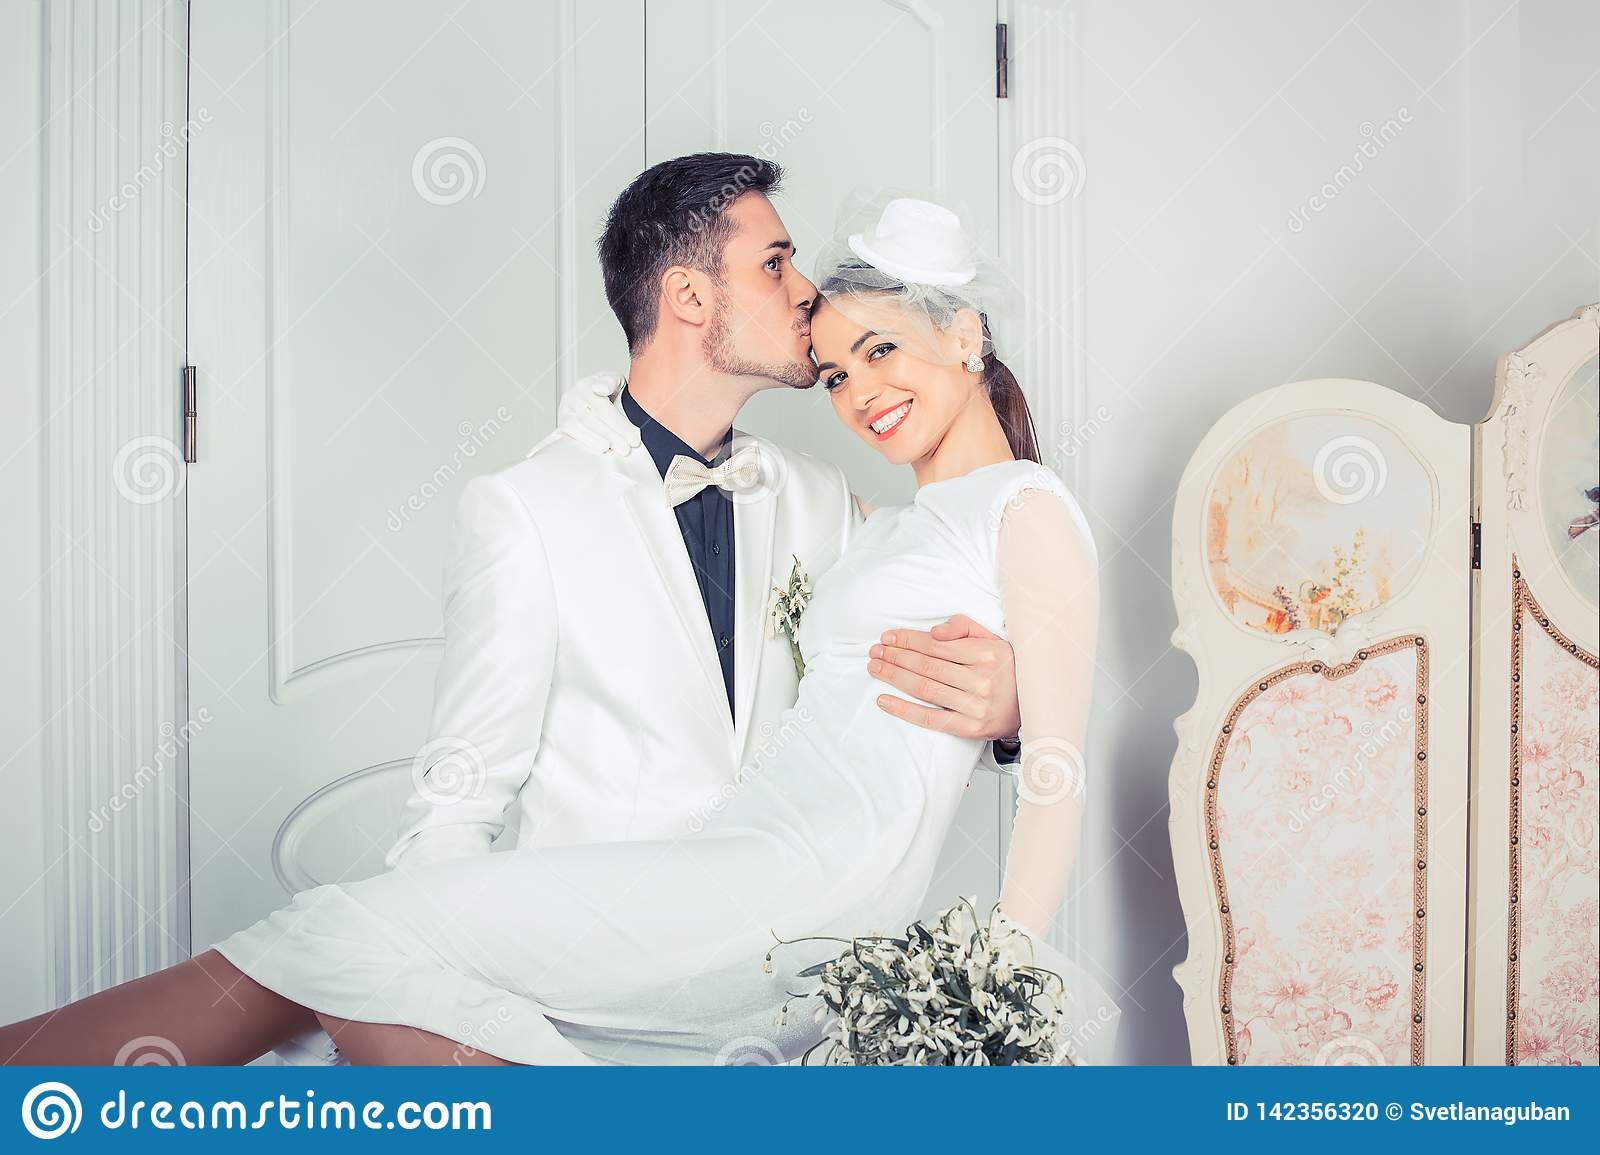 Loving groom holding woman on hands